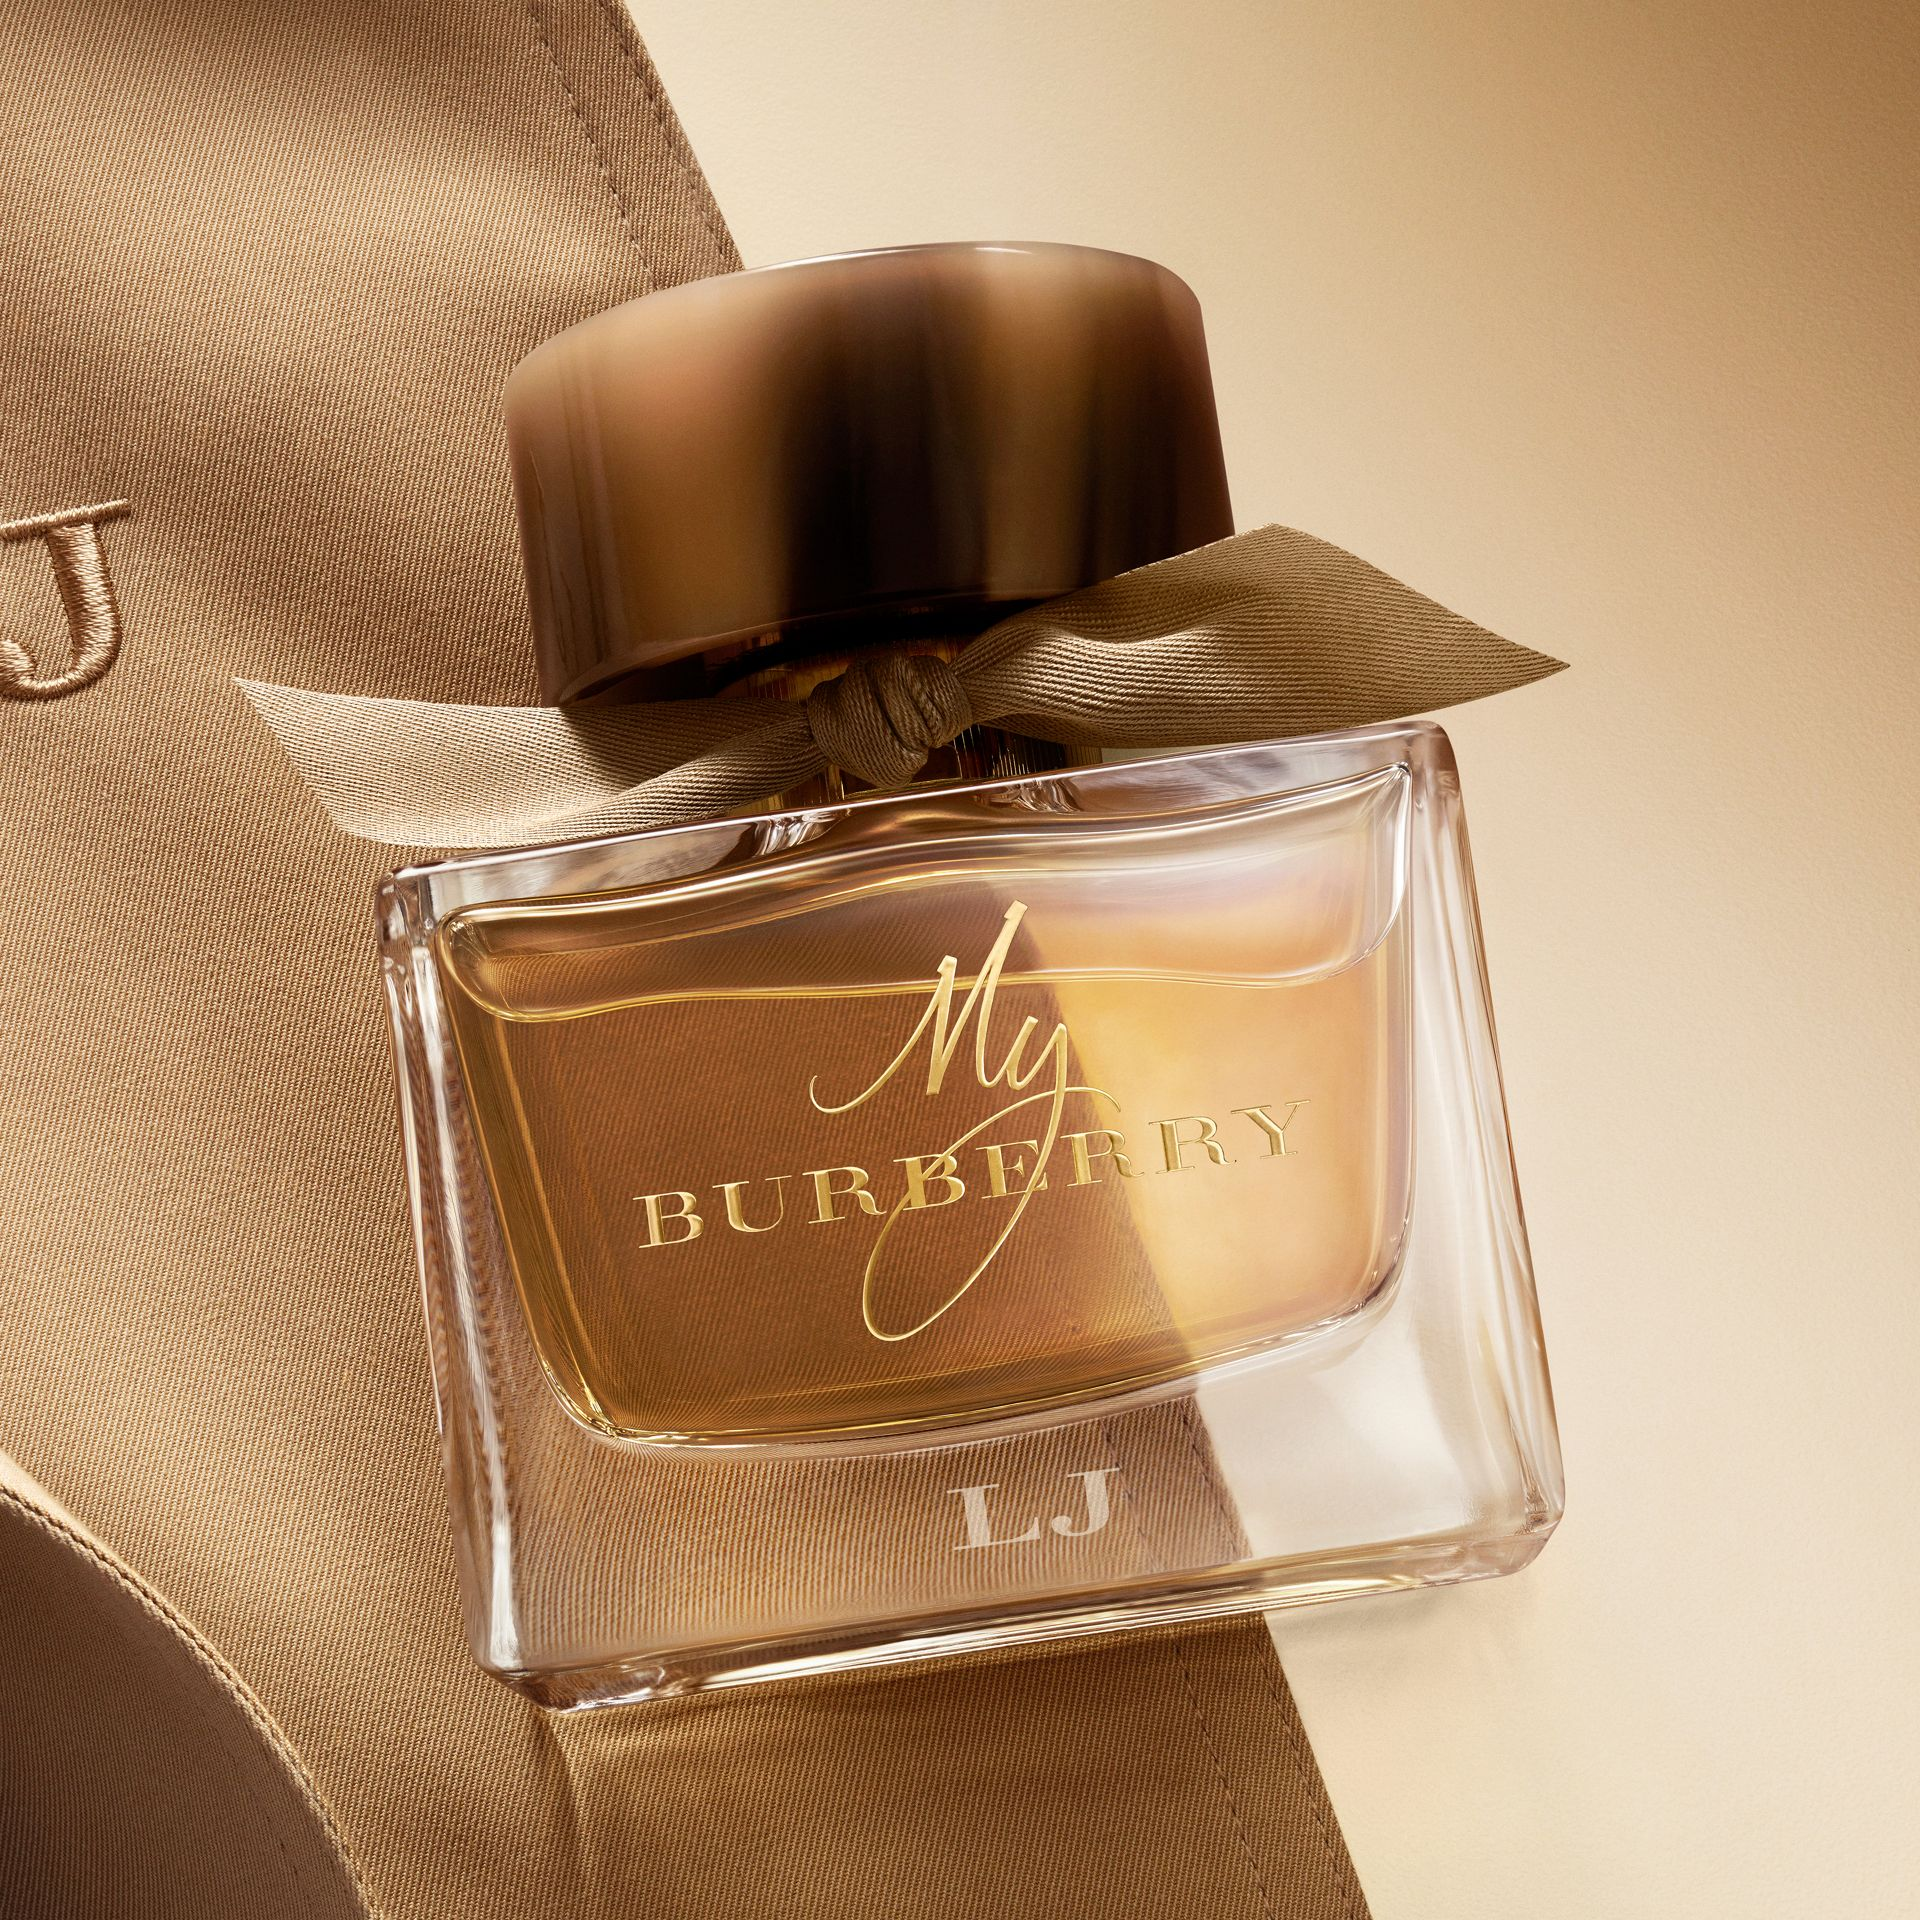 My Burberry Eau de Parfum 900 ml in der Sammleredition (Honiggelb/trenchfarben) - Damen | Burberry - Galerie-Bild 4